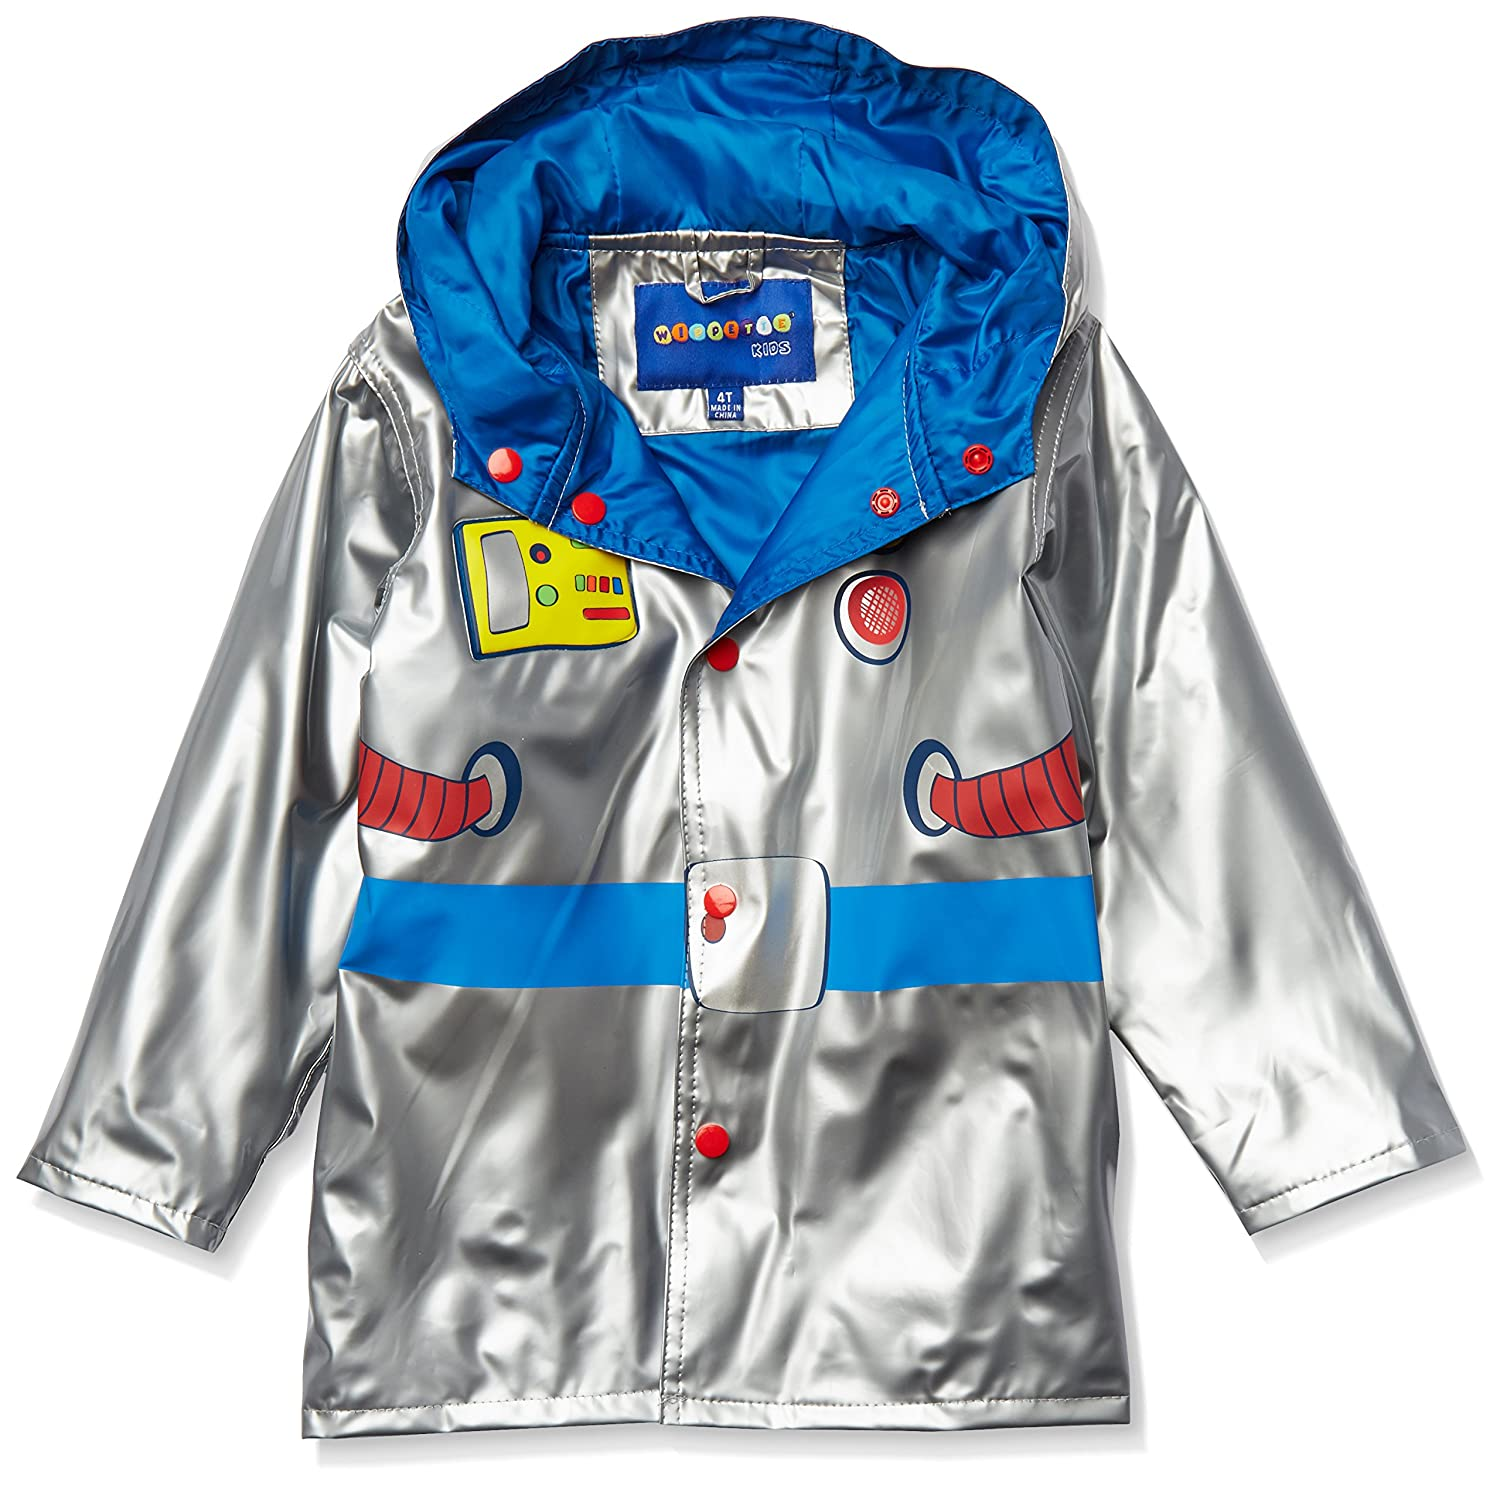 00a851553 Amazon.com  Wippette Boys Water Resistant Rain Jacket  Clothing